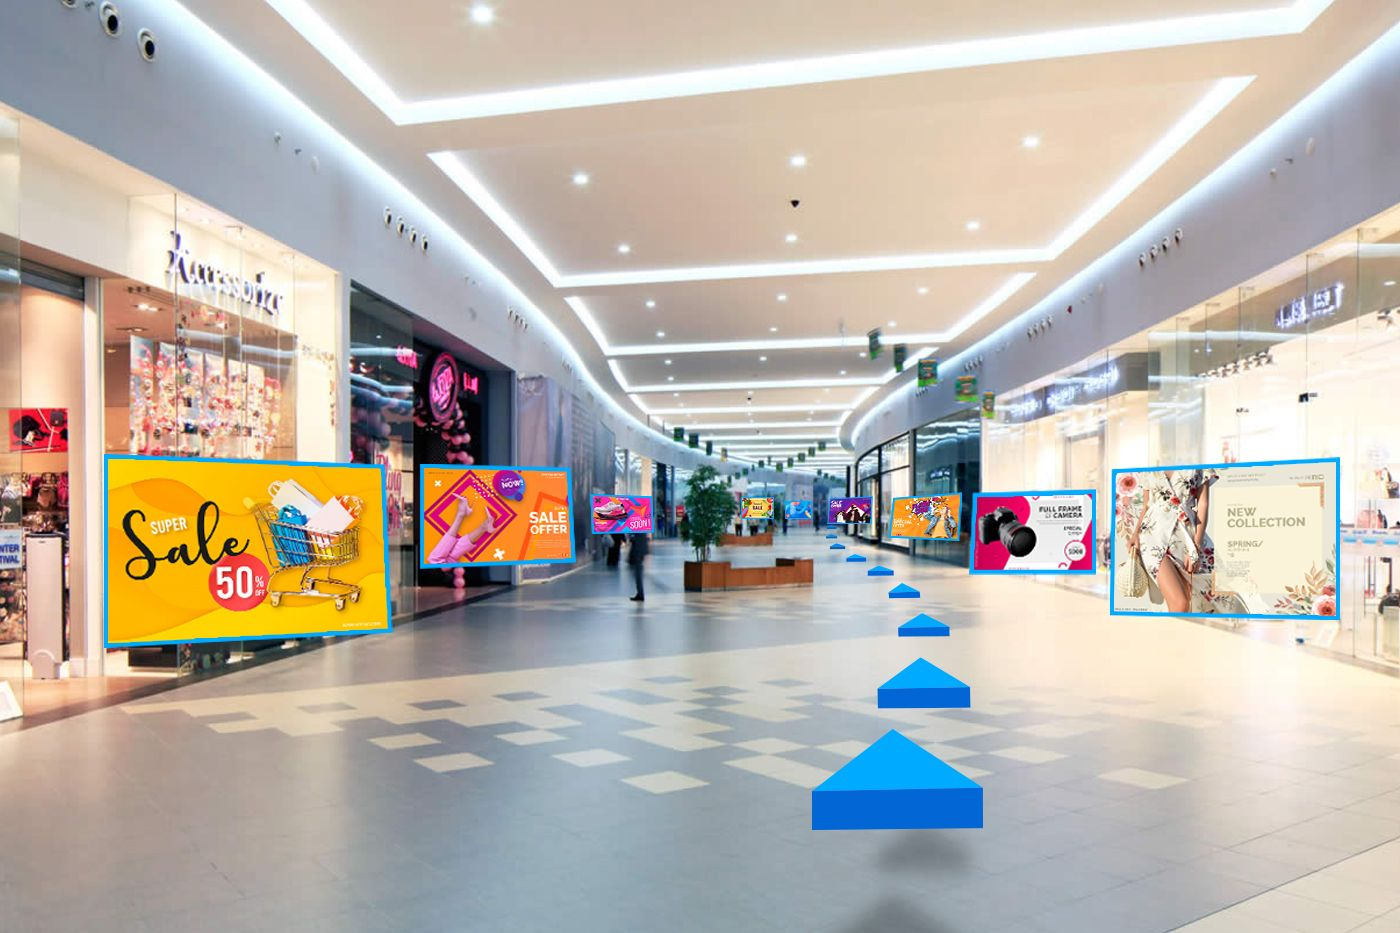 Augmented Shopping Mall | Augmented reality, Virtual reality apps, Medical  technology